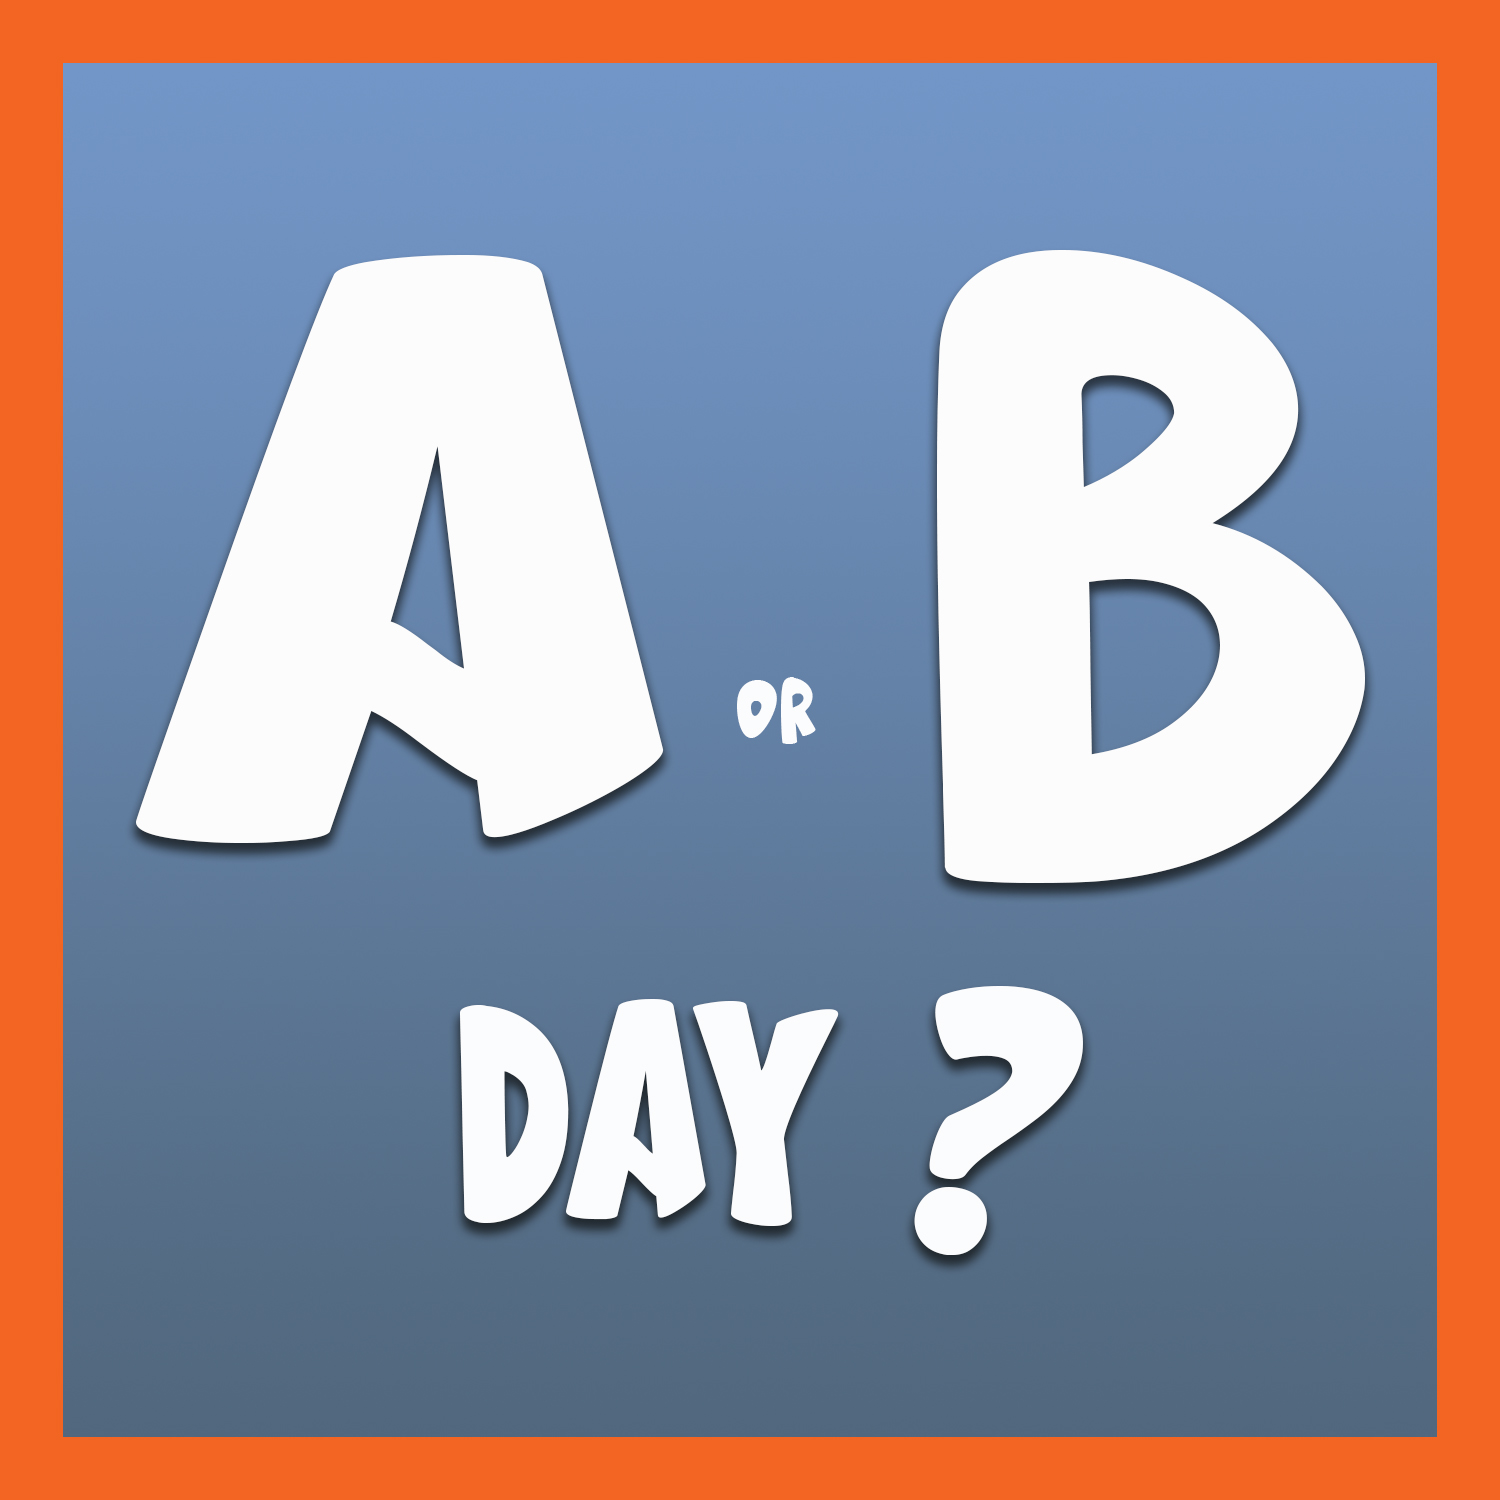 A or B day